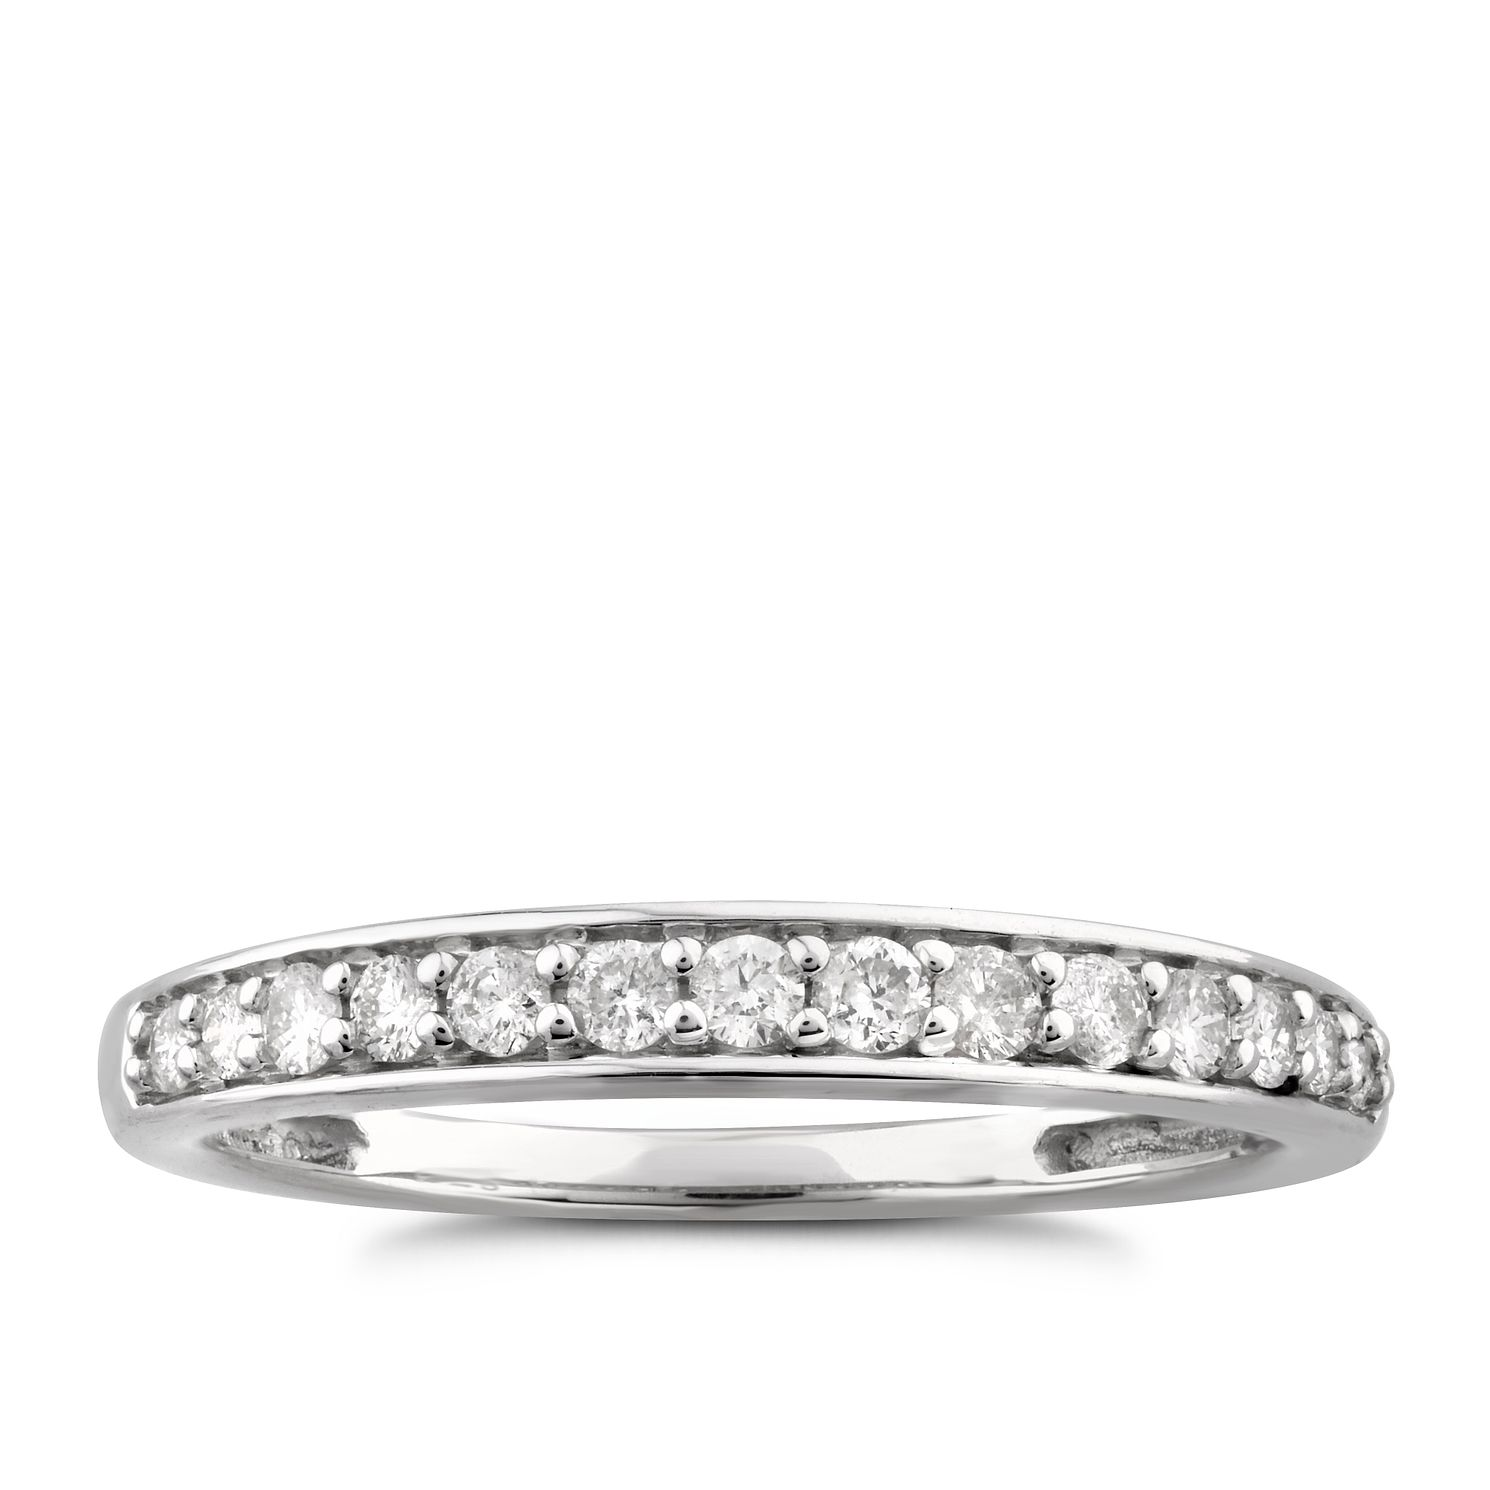 Perfect Fit 9ct White Gold 0.24ct Diamond Band Ring - Product number 6010377